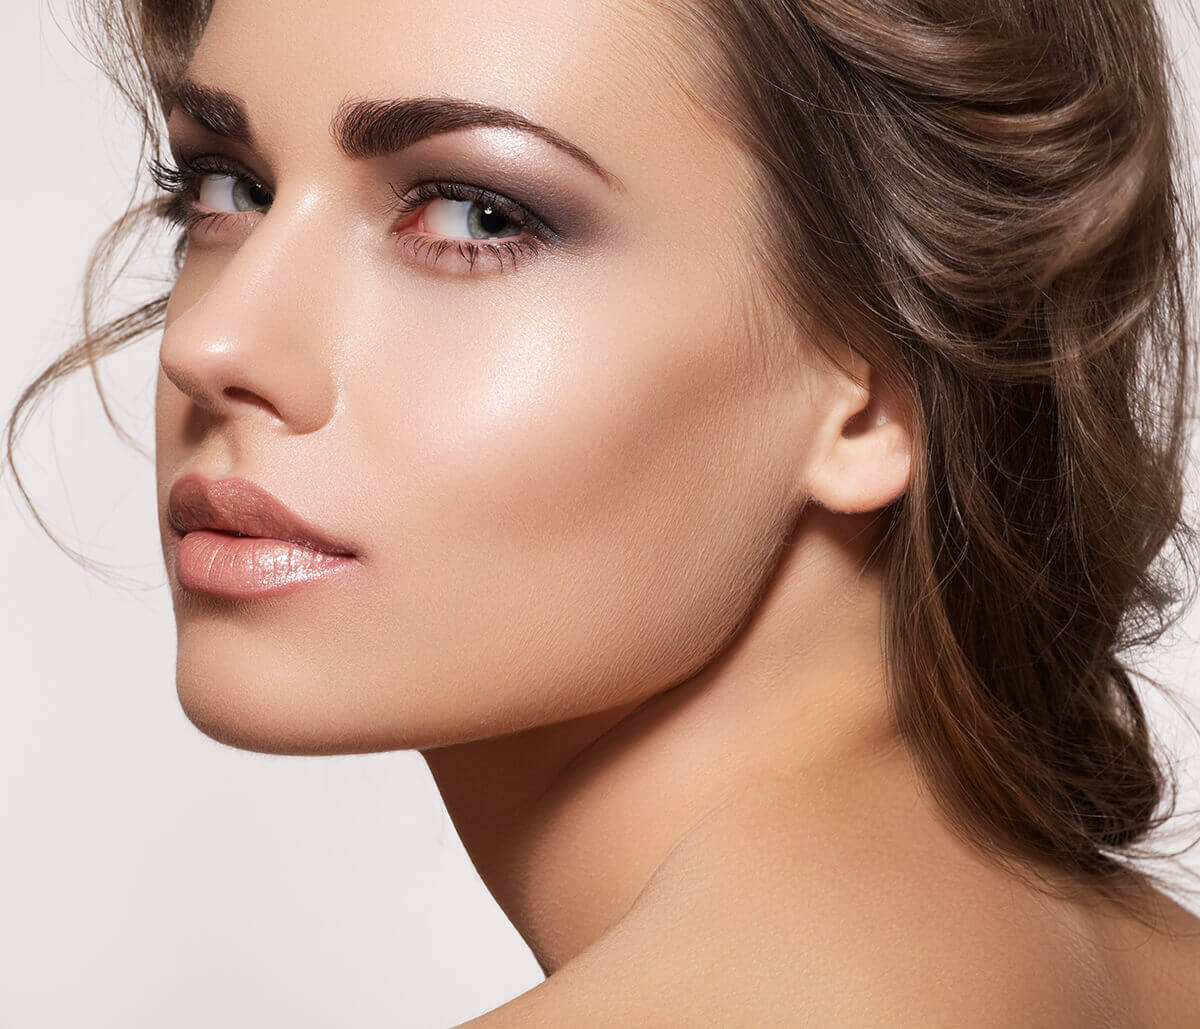 Excel V Plus Laser Skin Treatment in Hamilton, ON Area